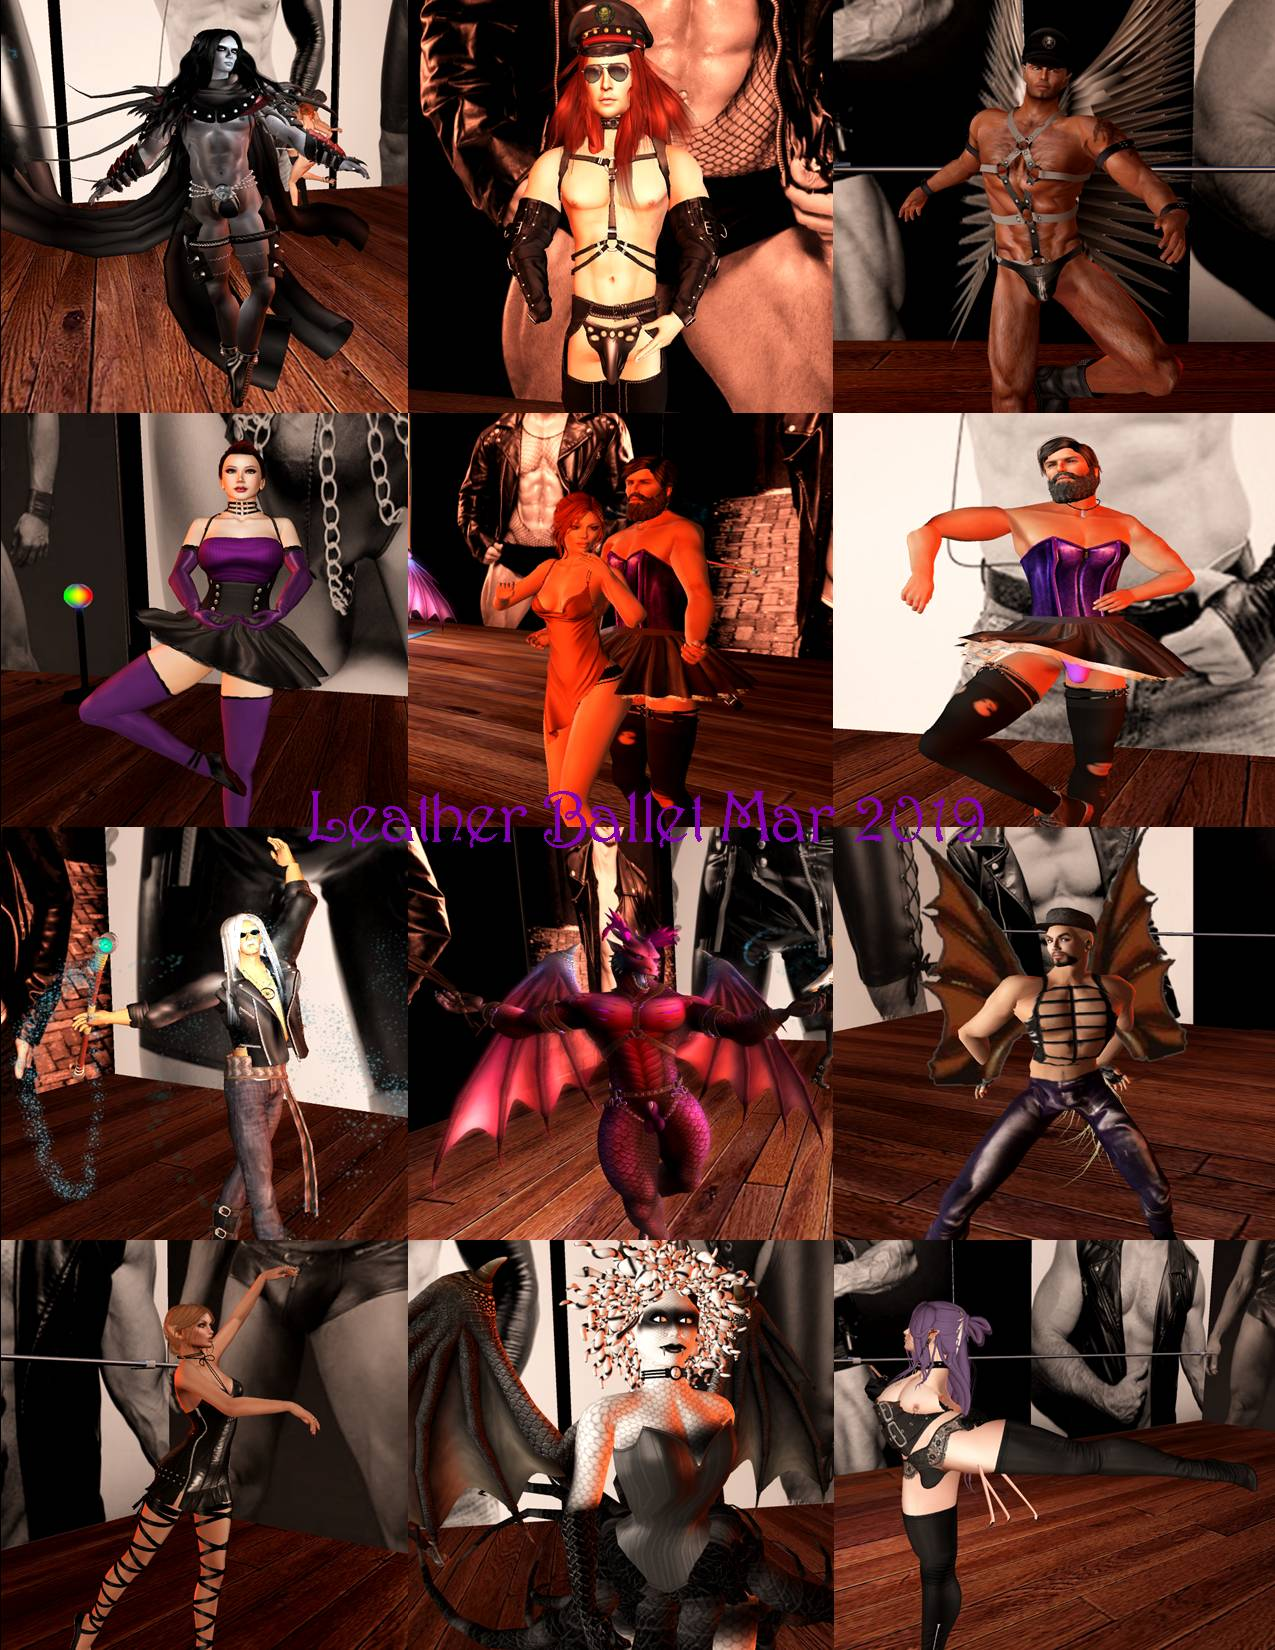 LEATHER BALLET COLLAGE MAR 2019